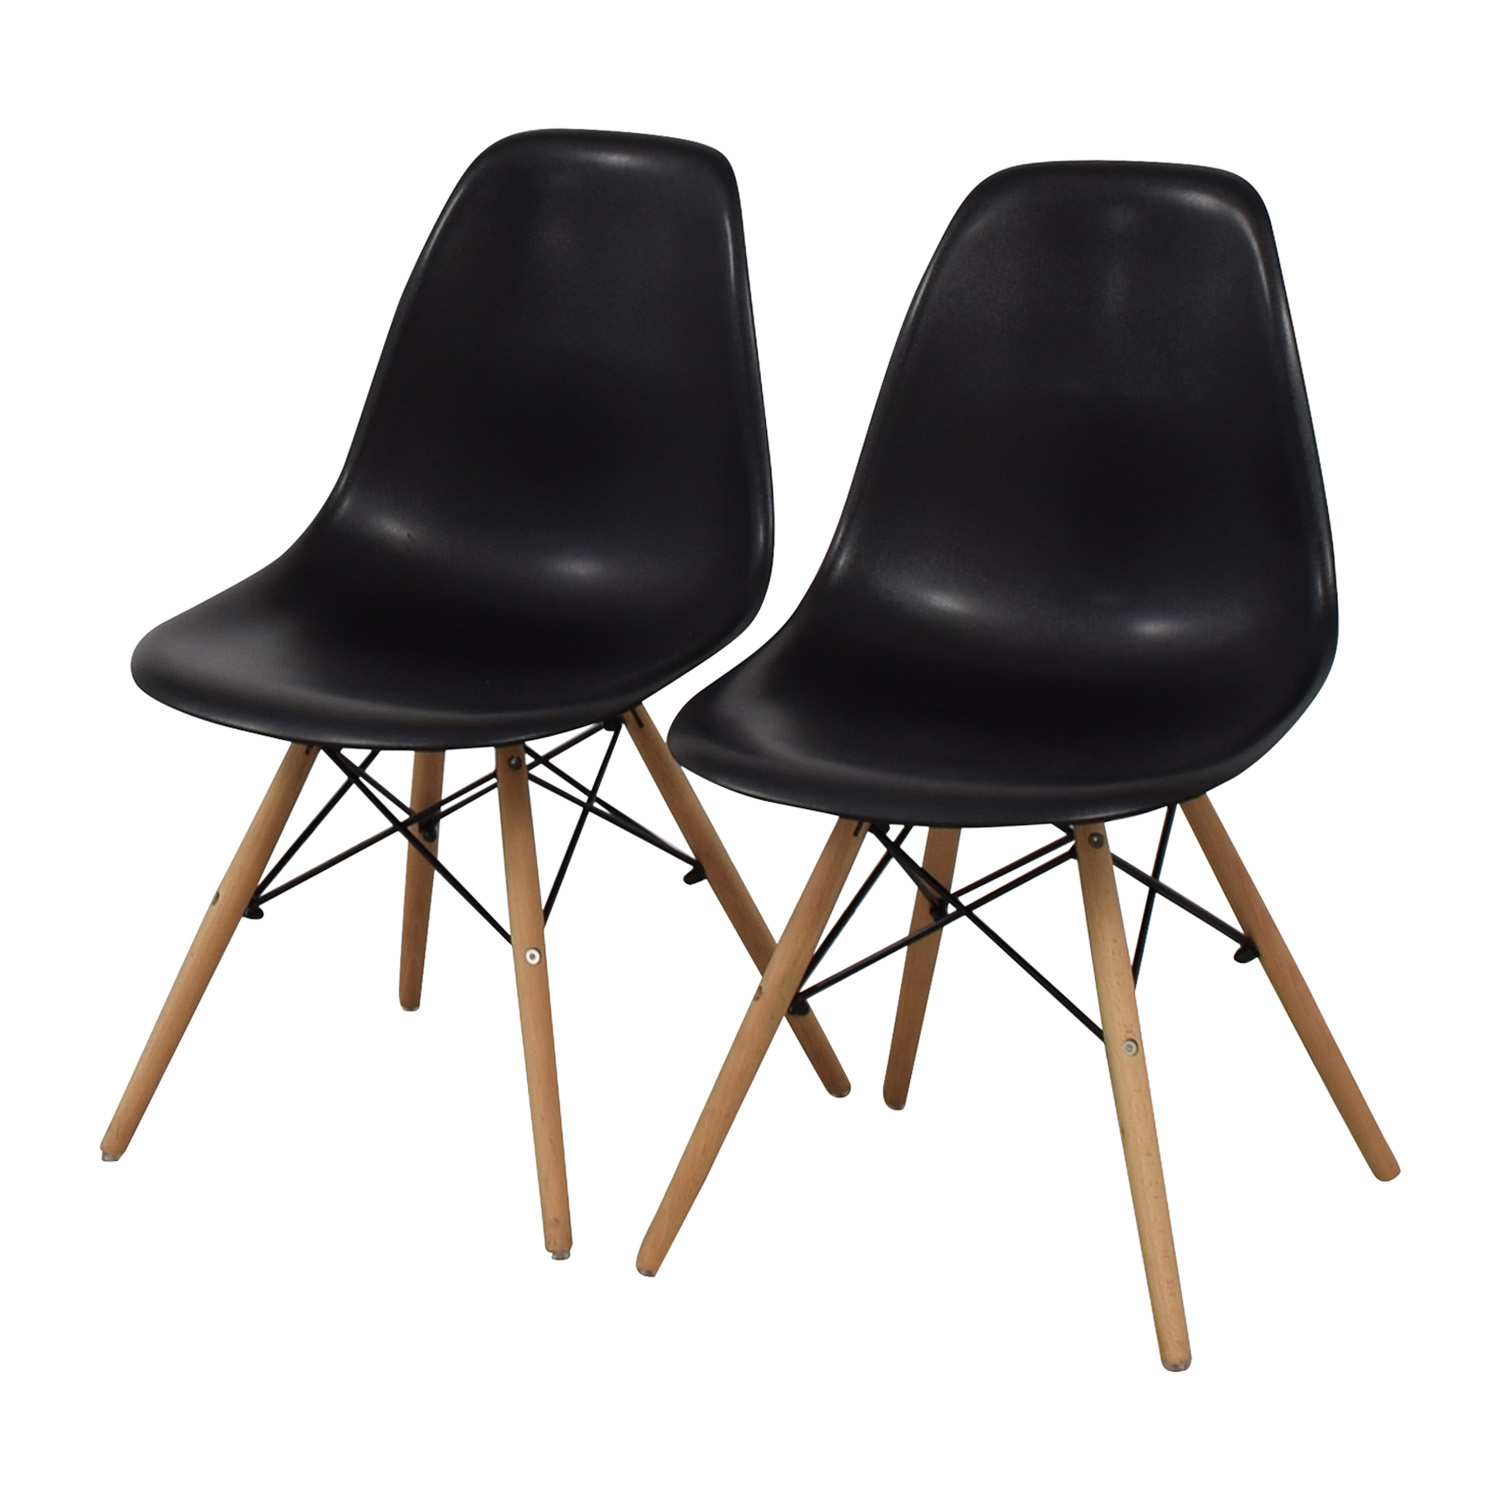 buy CB2 Black and Beech Wood Chairs CB2 Chairs